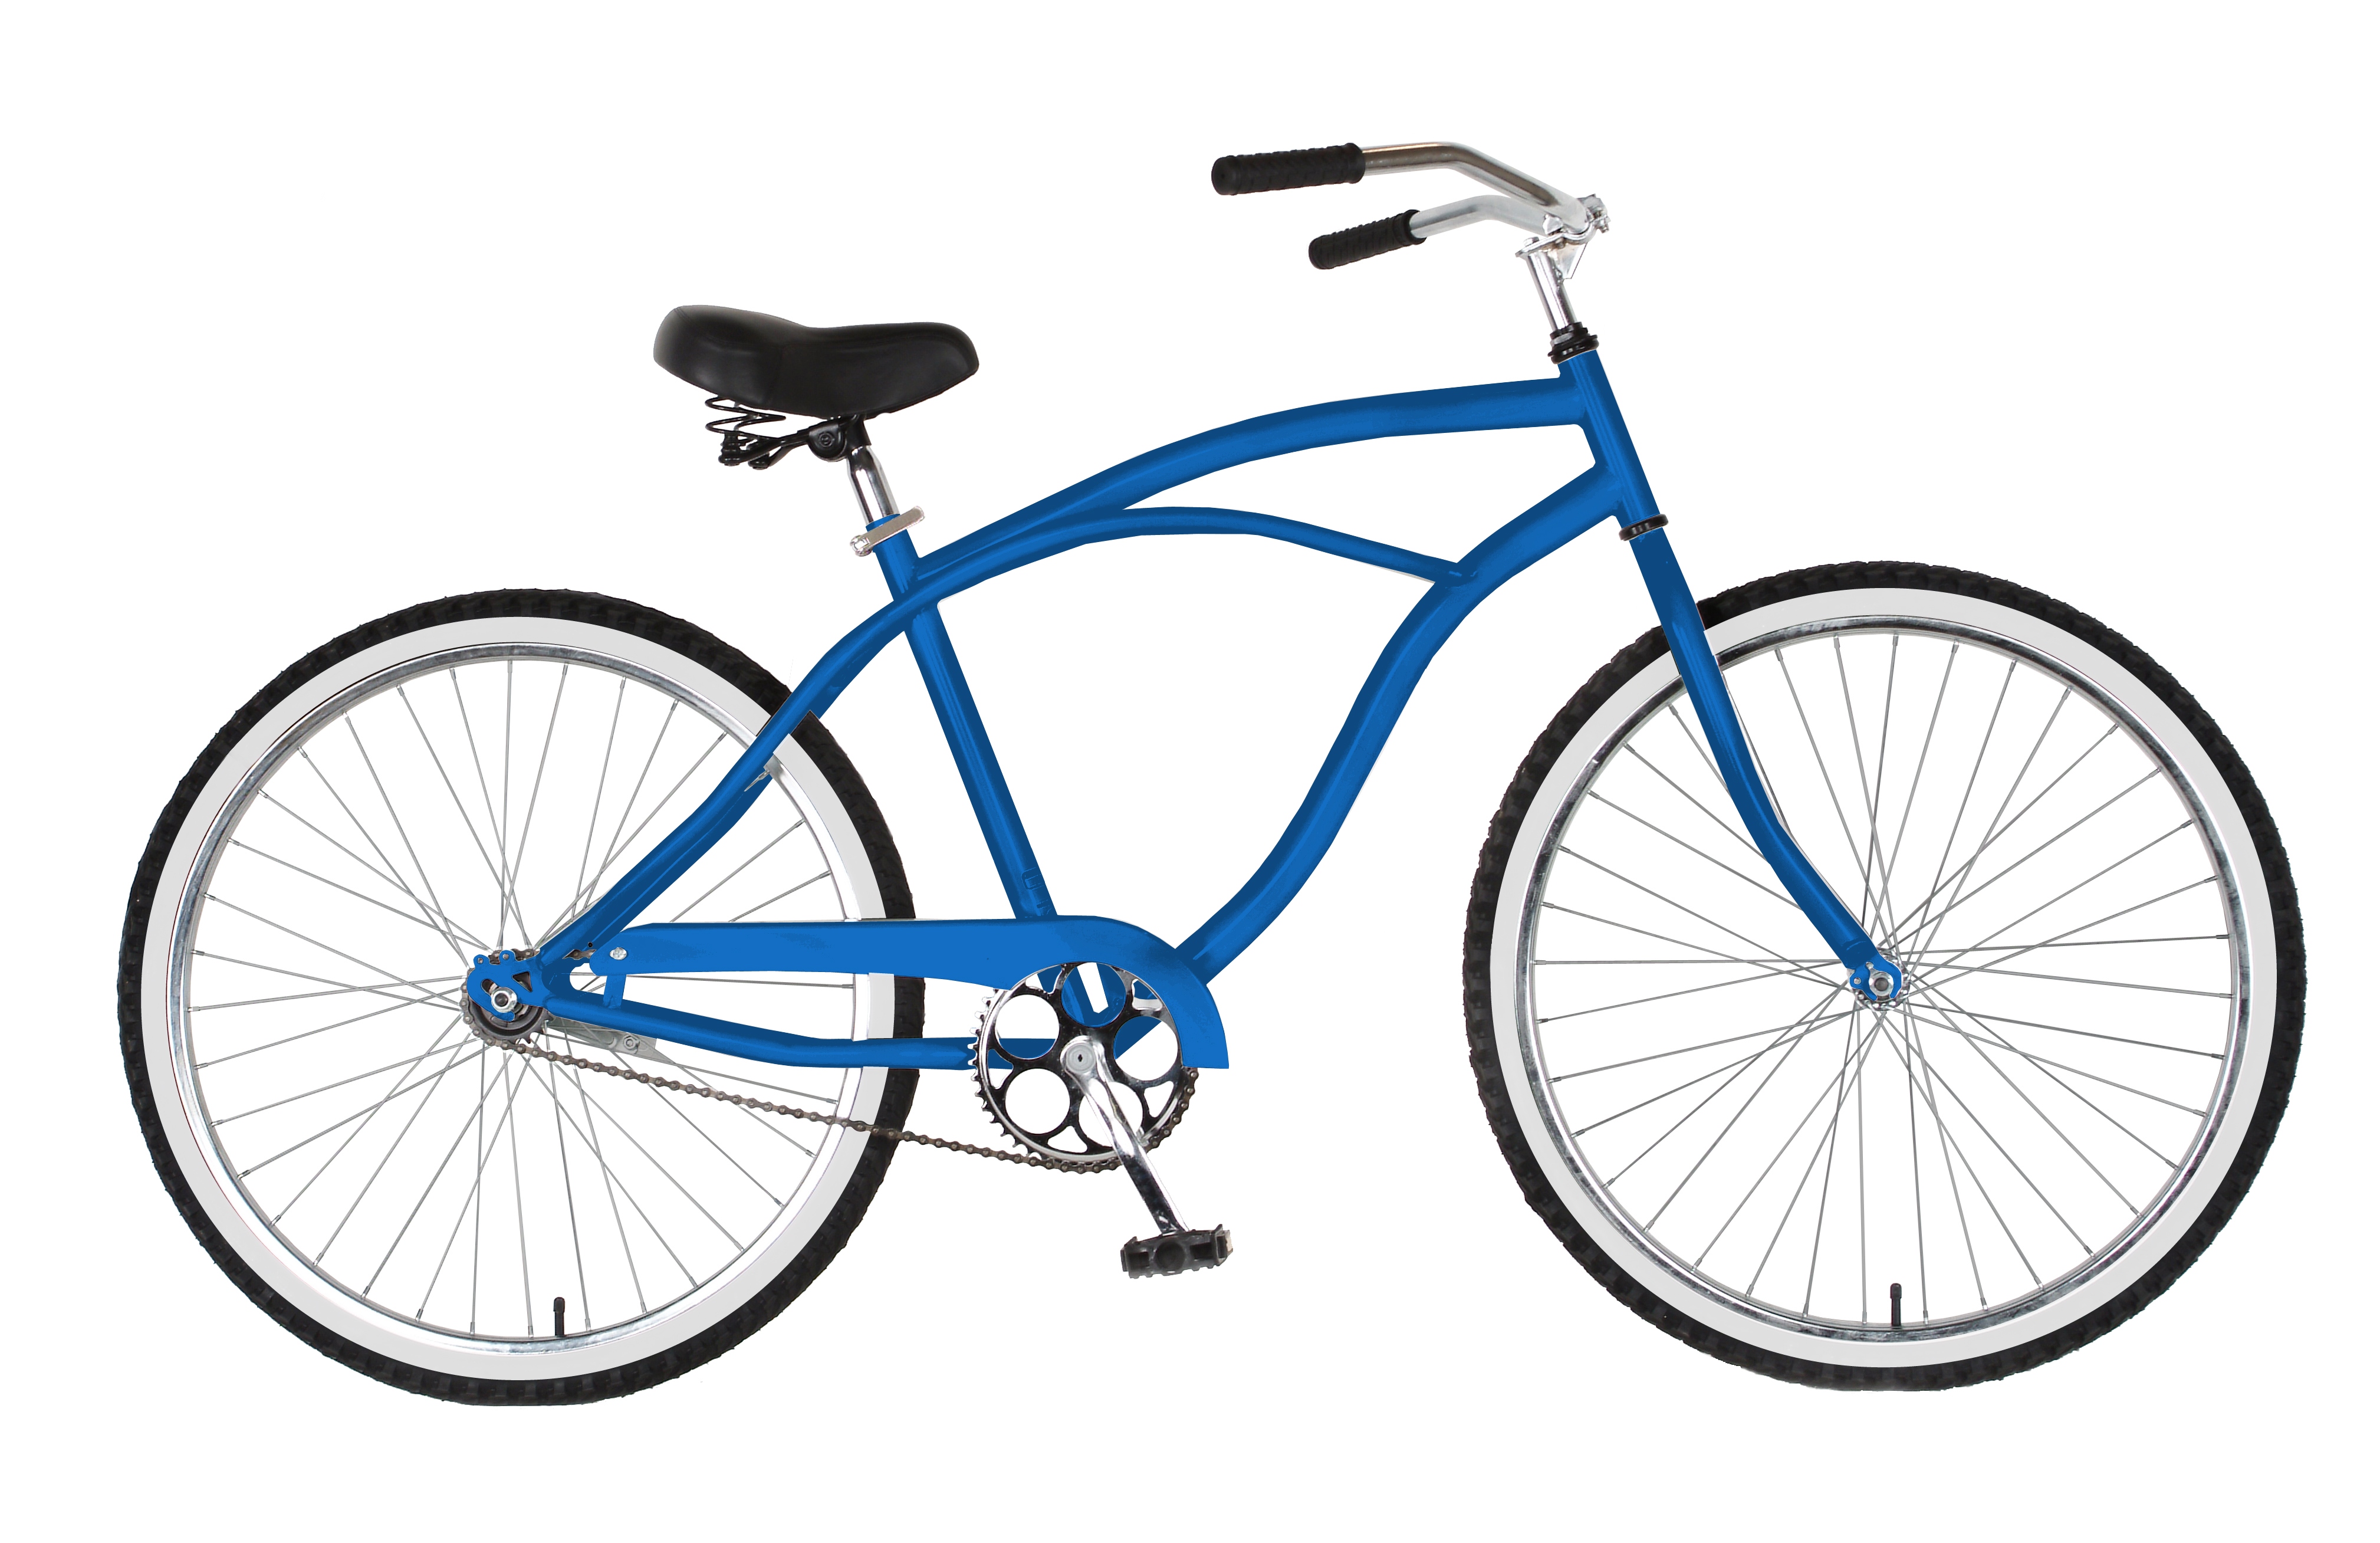 What Is The Best Brand Of Beach Cruiser Bicycles